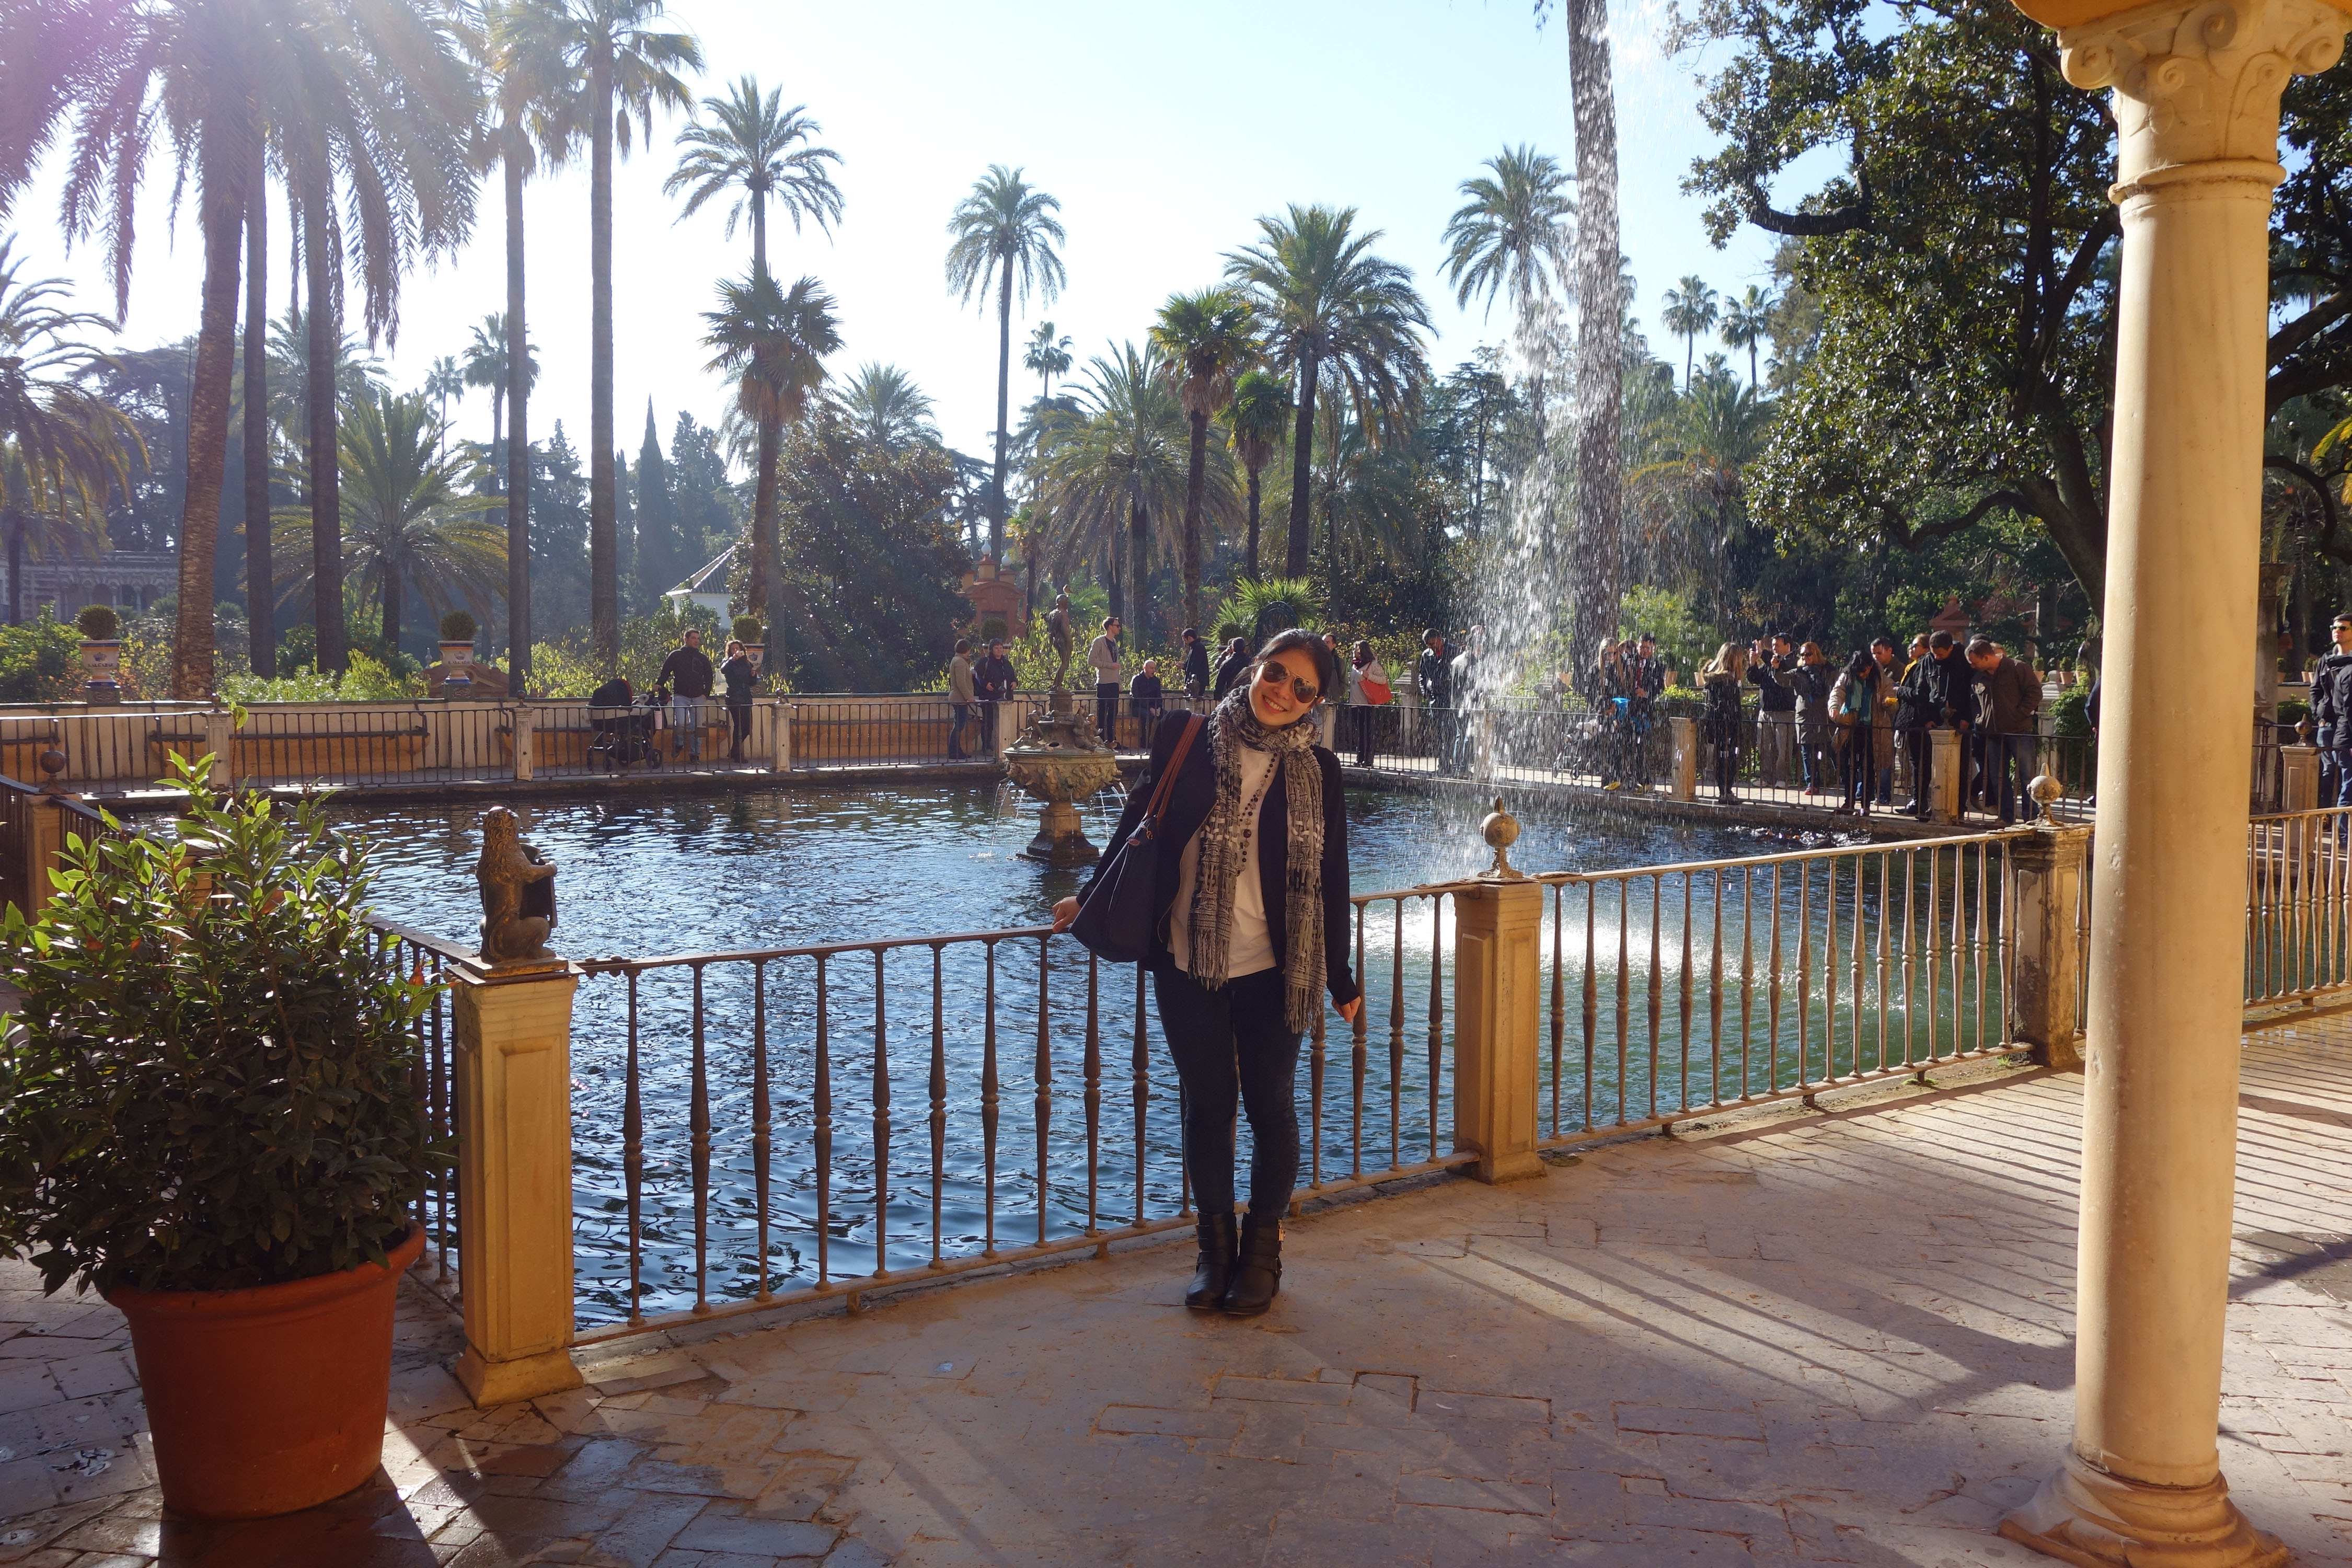 Bobbieness at Alcazar Seville